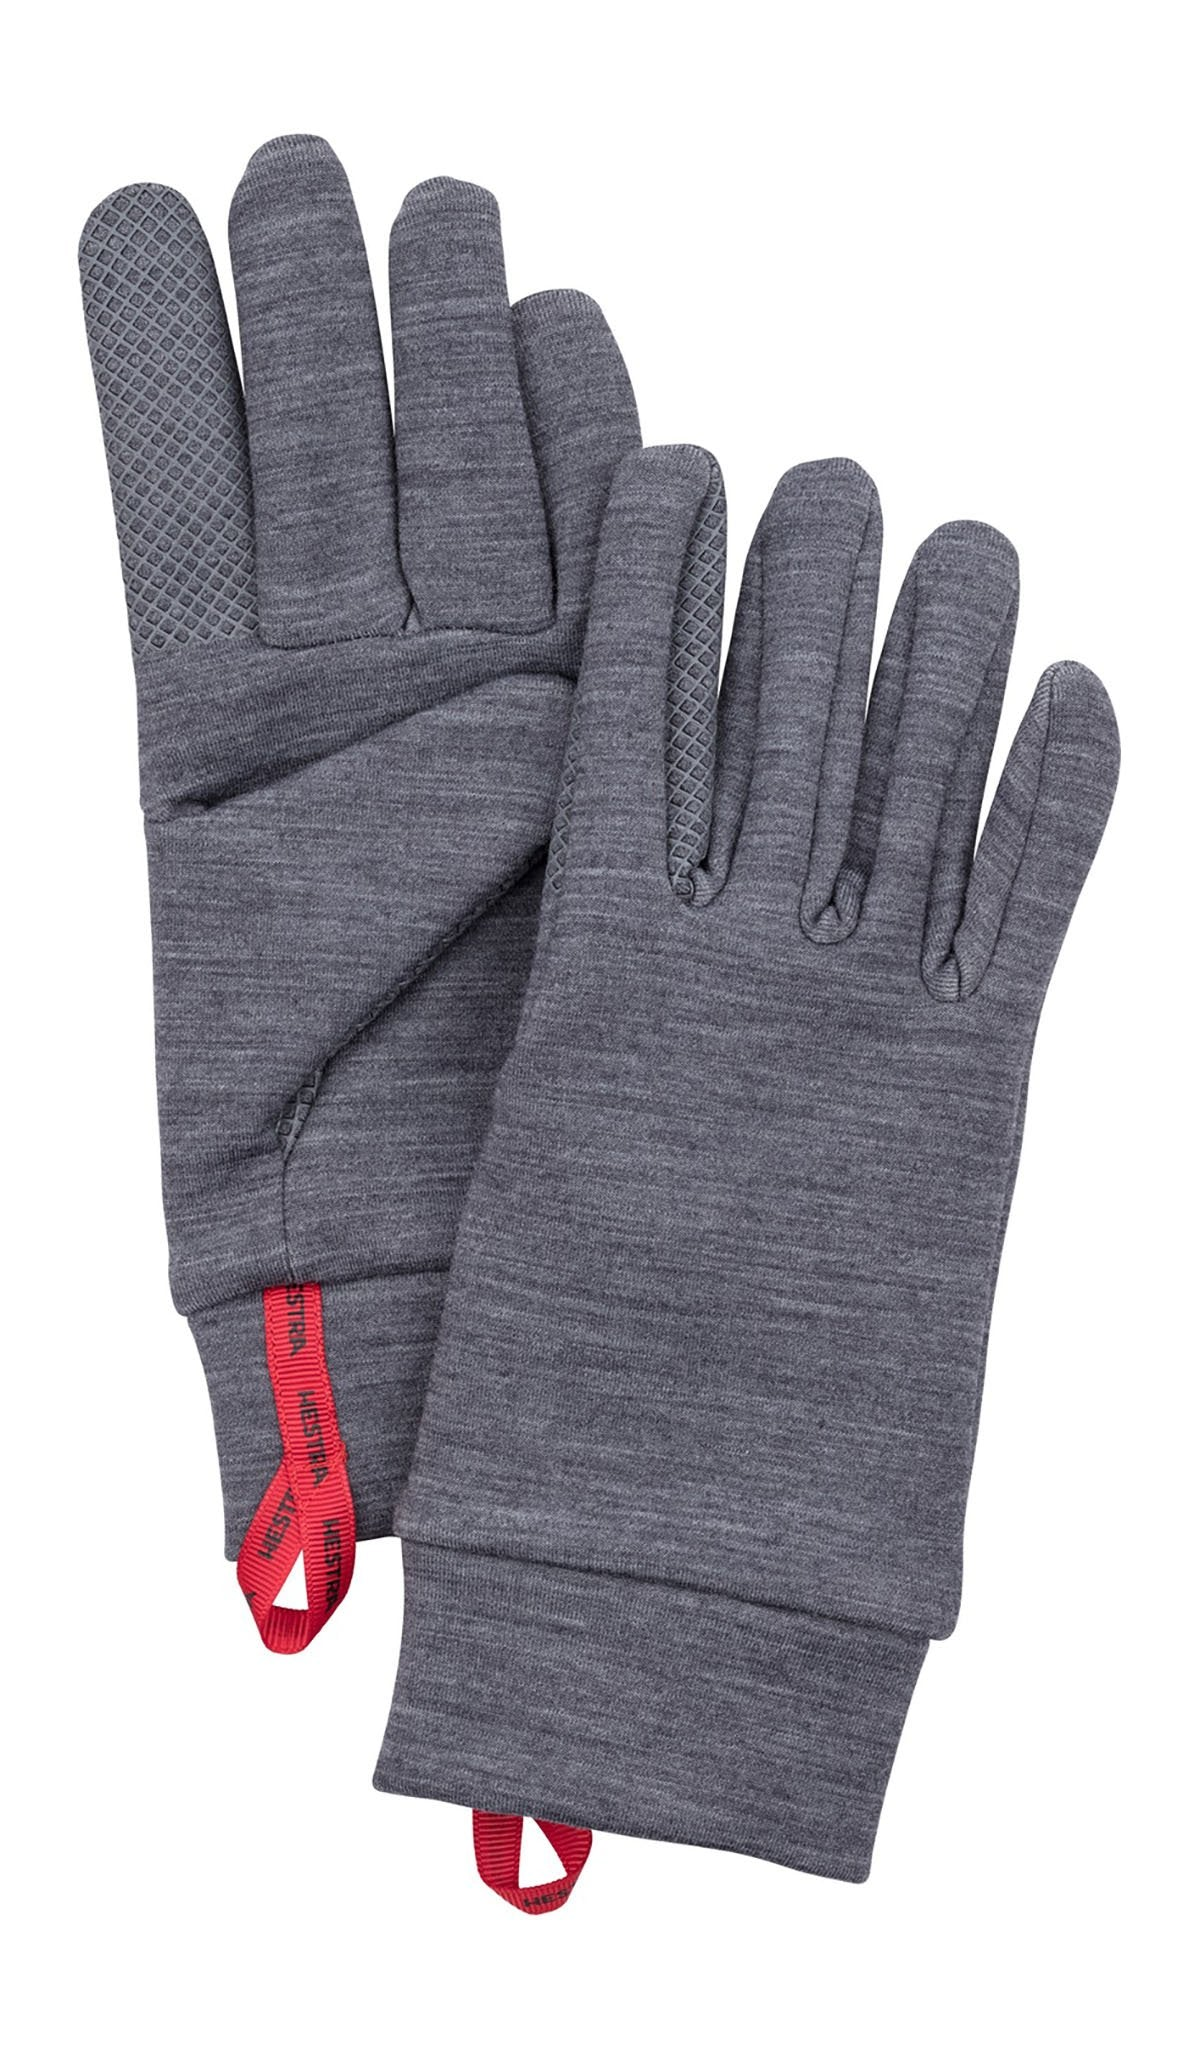 Hestra Touch Point Warmth Inner Gloves